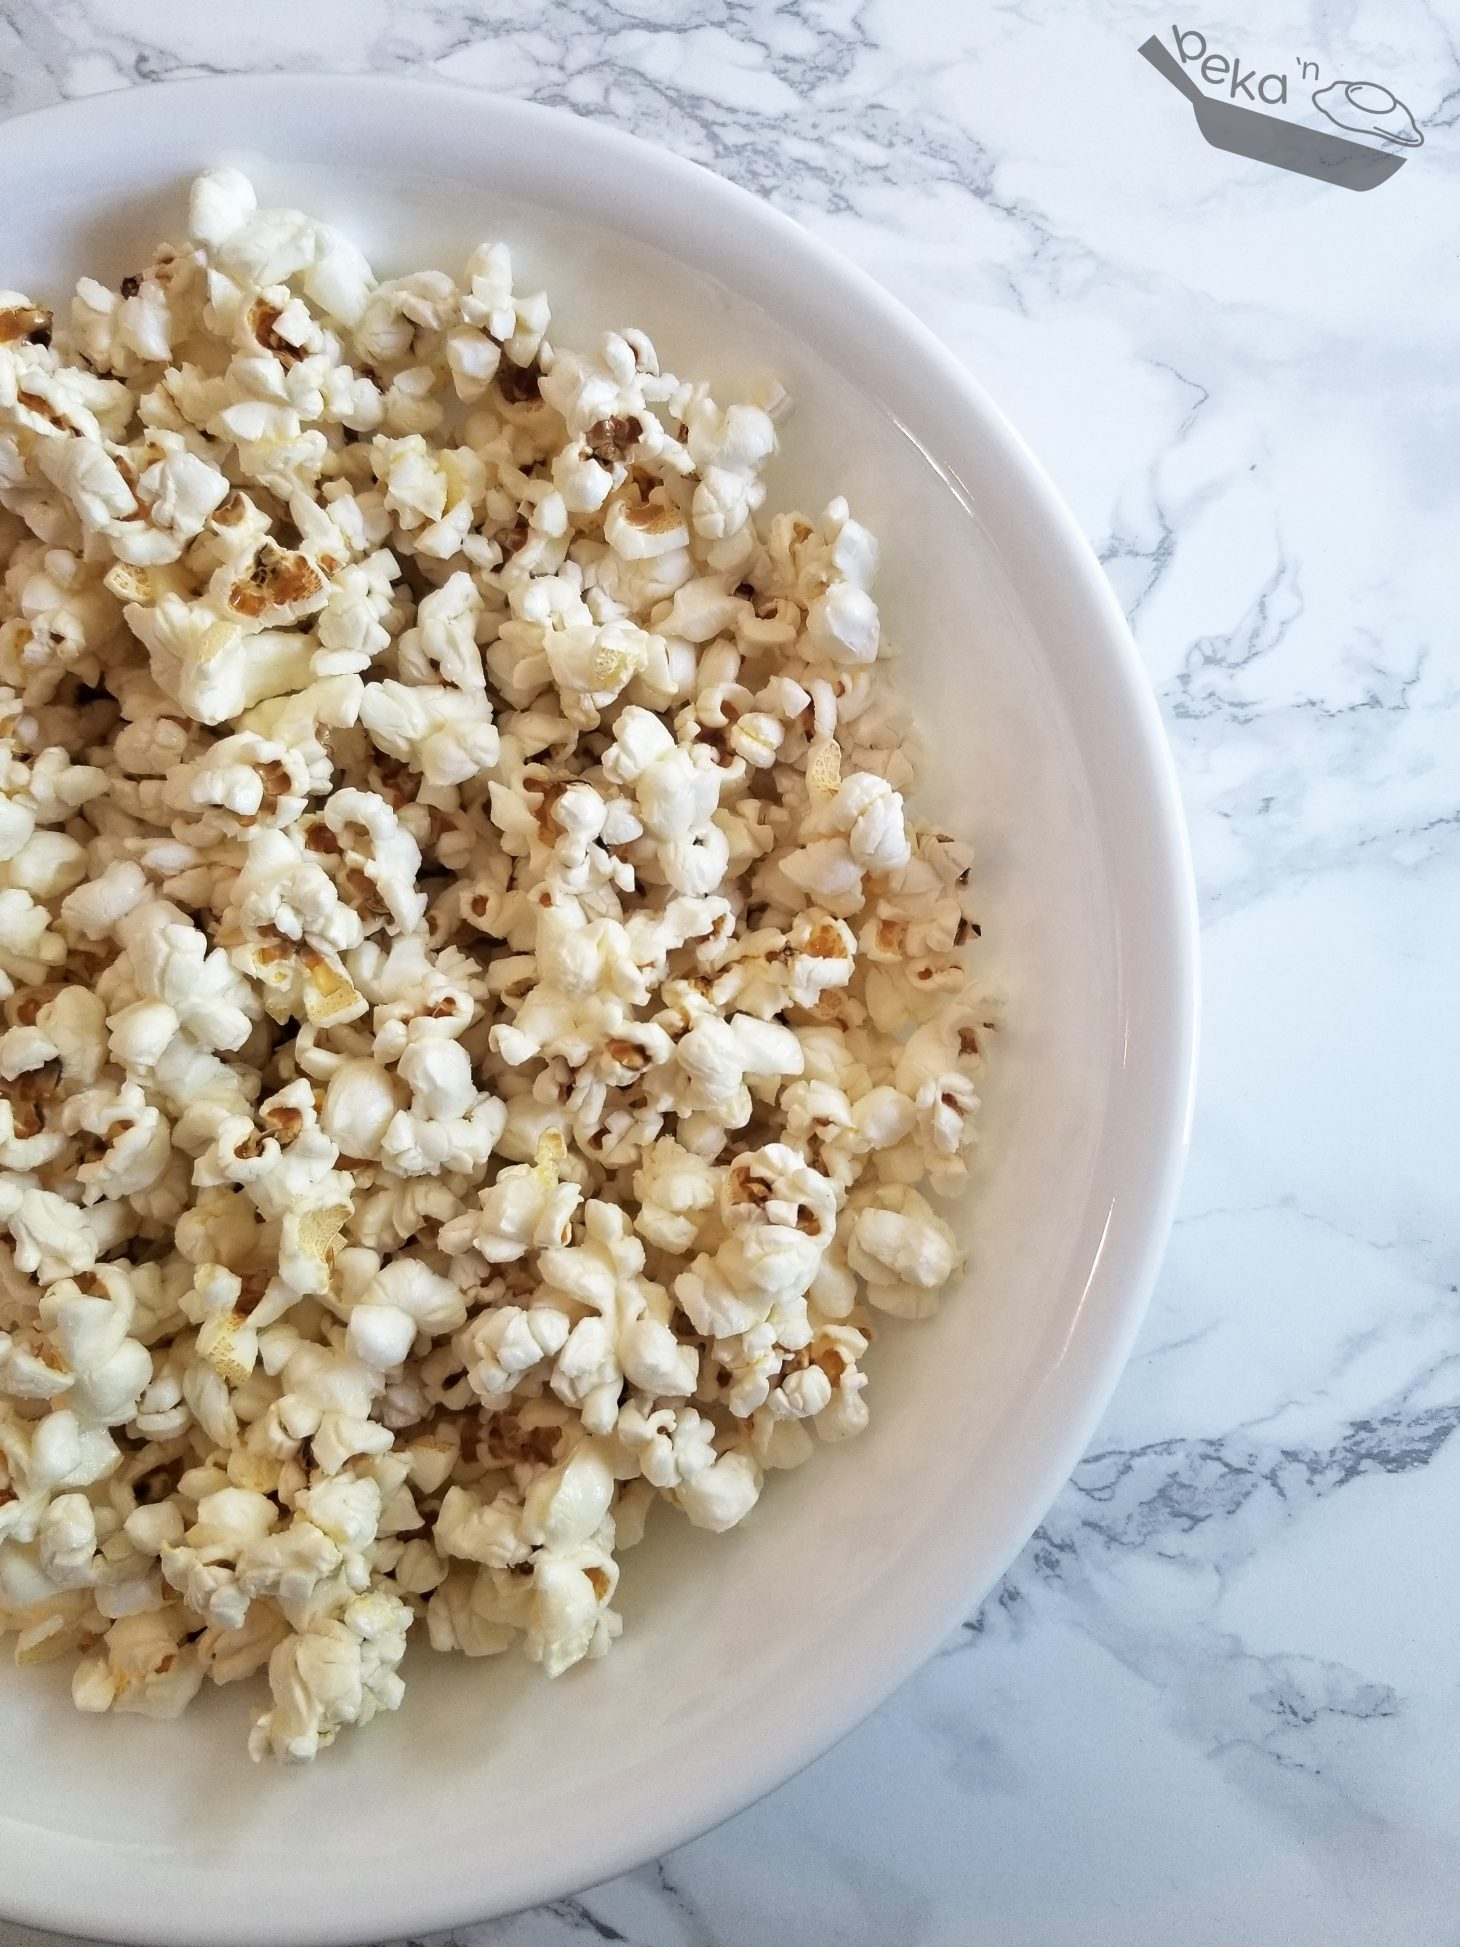 An overhead image of homemade popcorn in a large white bowl on a white marble background.